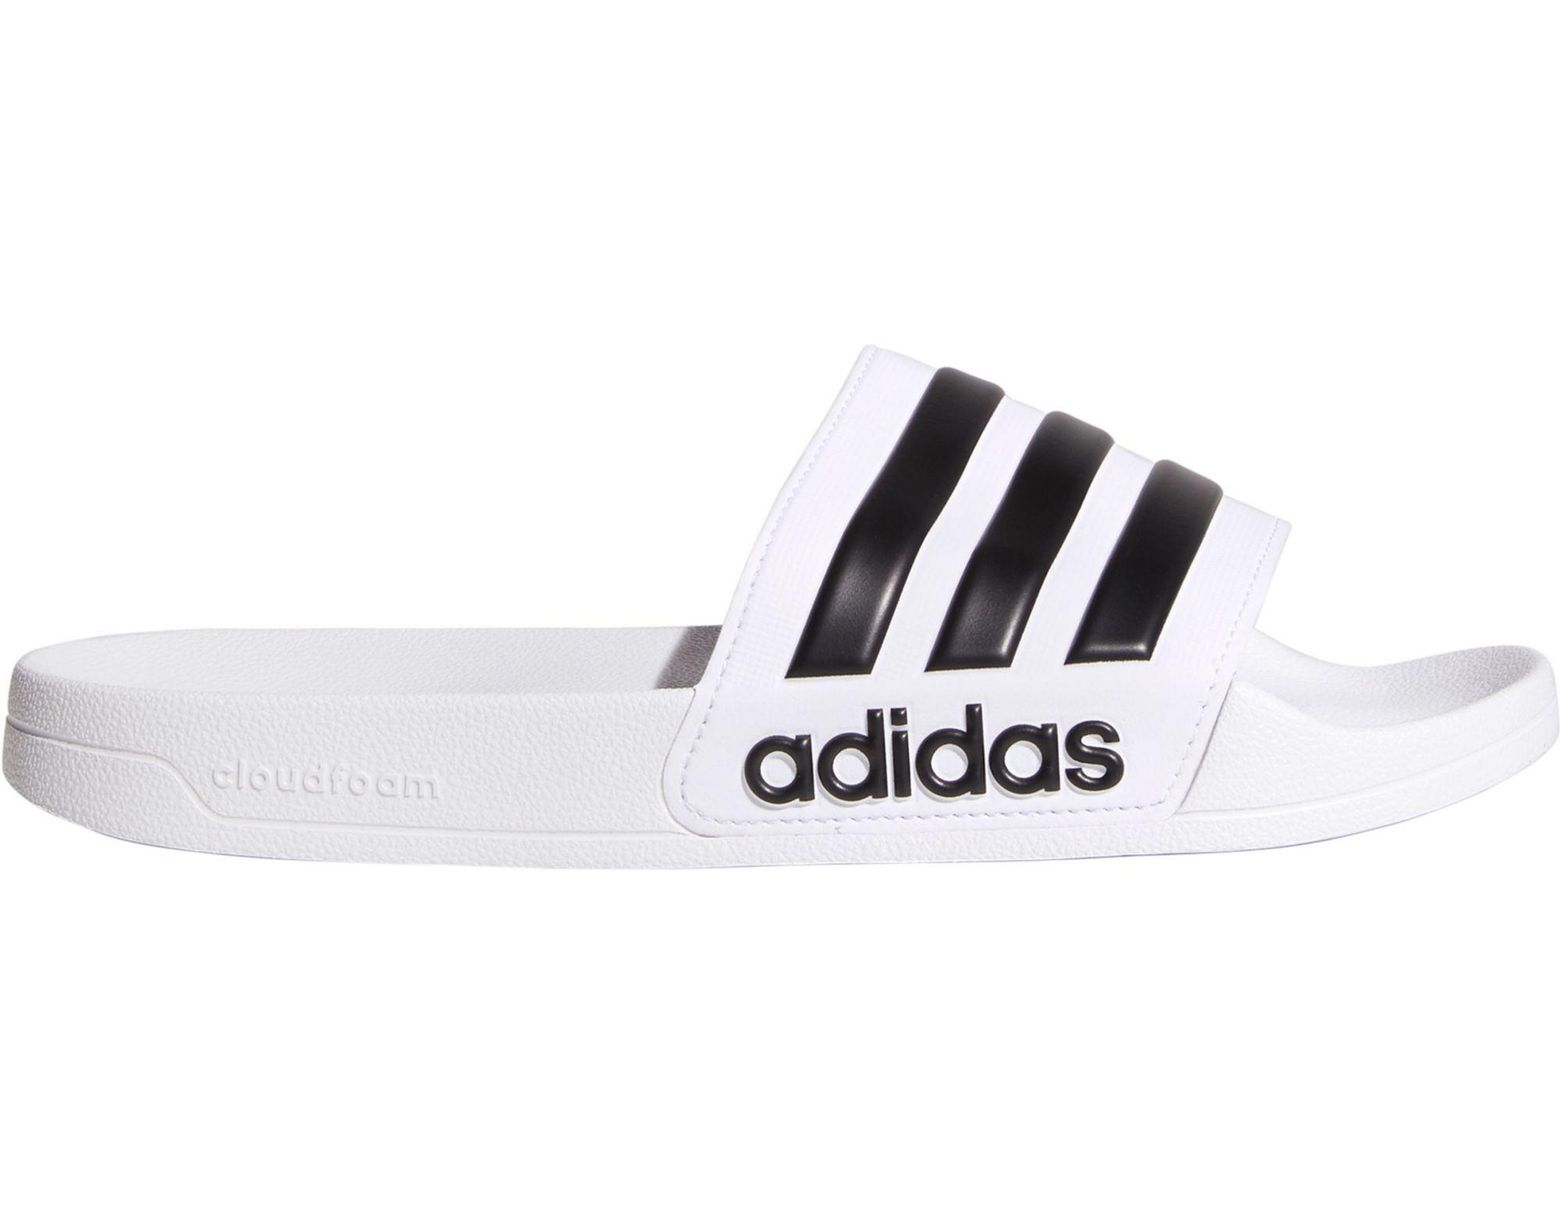 d6fe8314b adidas Adilette Cloudfoam Slides in White for Men - Save 38% - Lyst